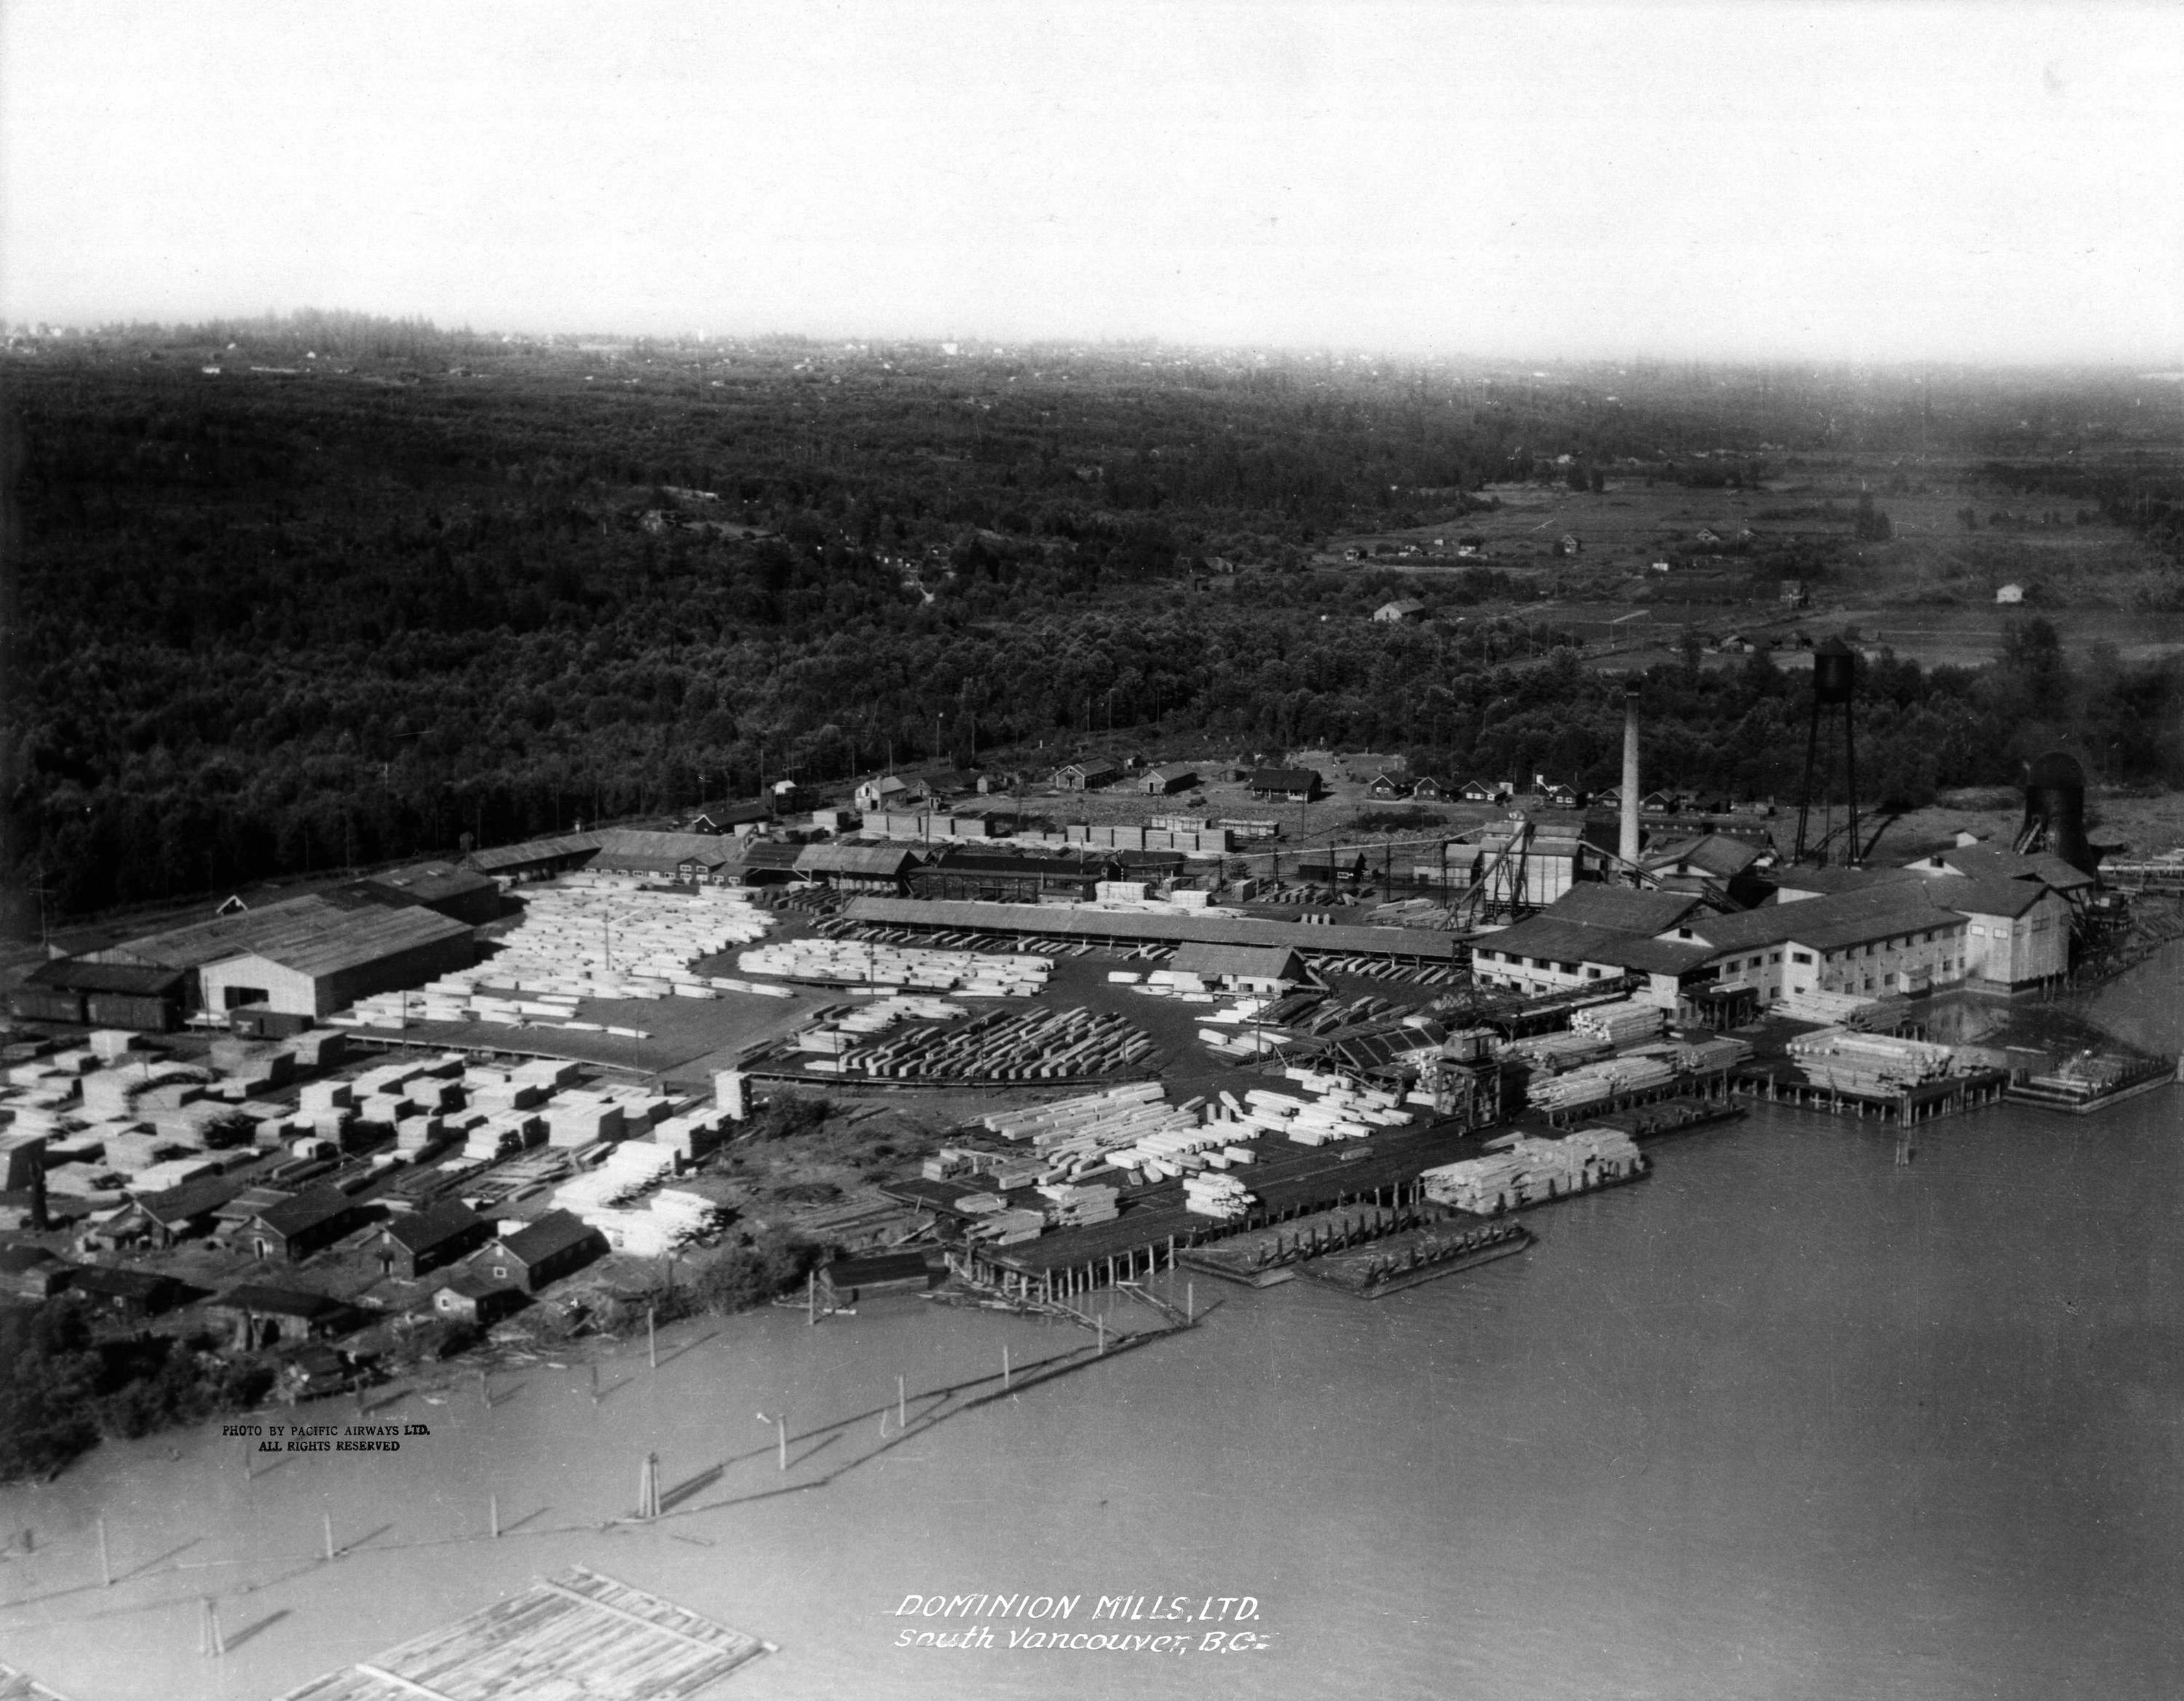 #ThrowbackThursday: Oblique aerial view of Dominion Mills, Ltd. #Vancouver in 1920s.  #TBT  #SouthVancouver #SouthVan #Marpole